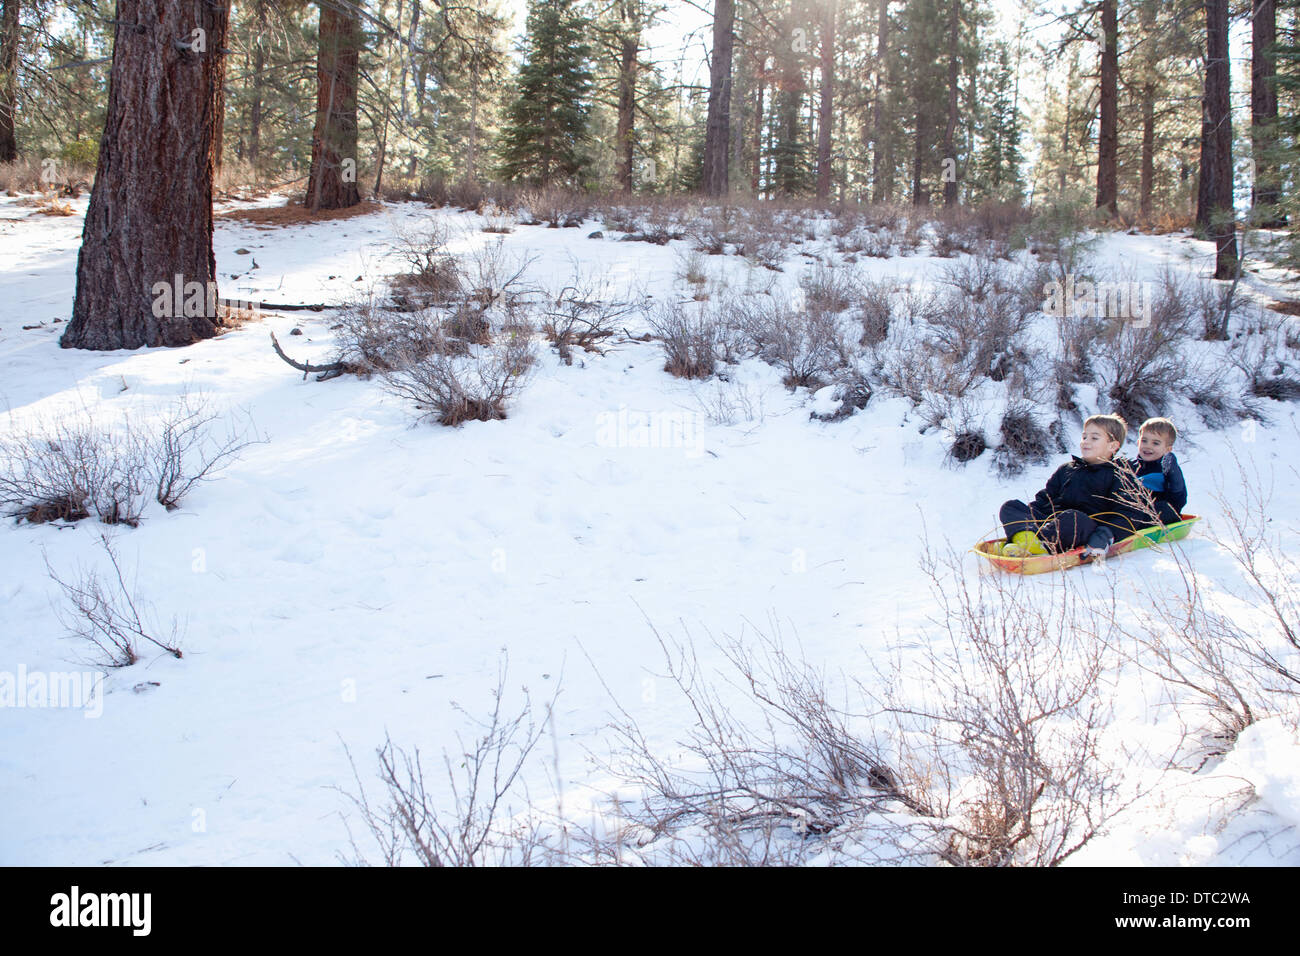 Two young brothers sledging through a forest - Stock Image